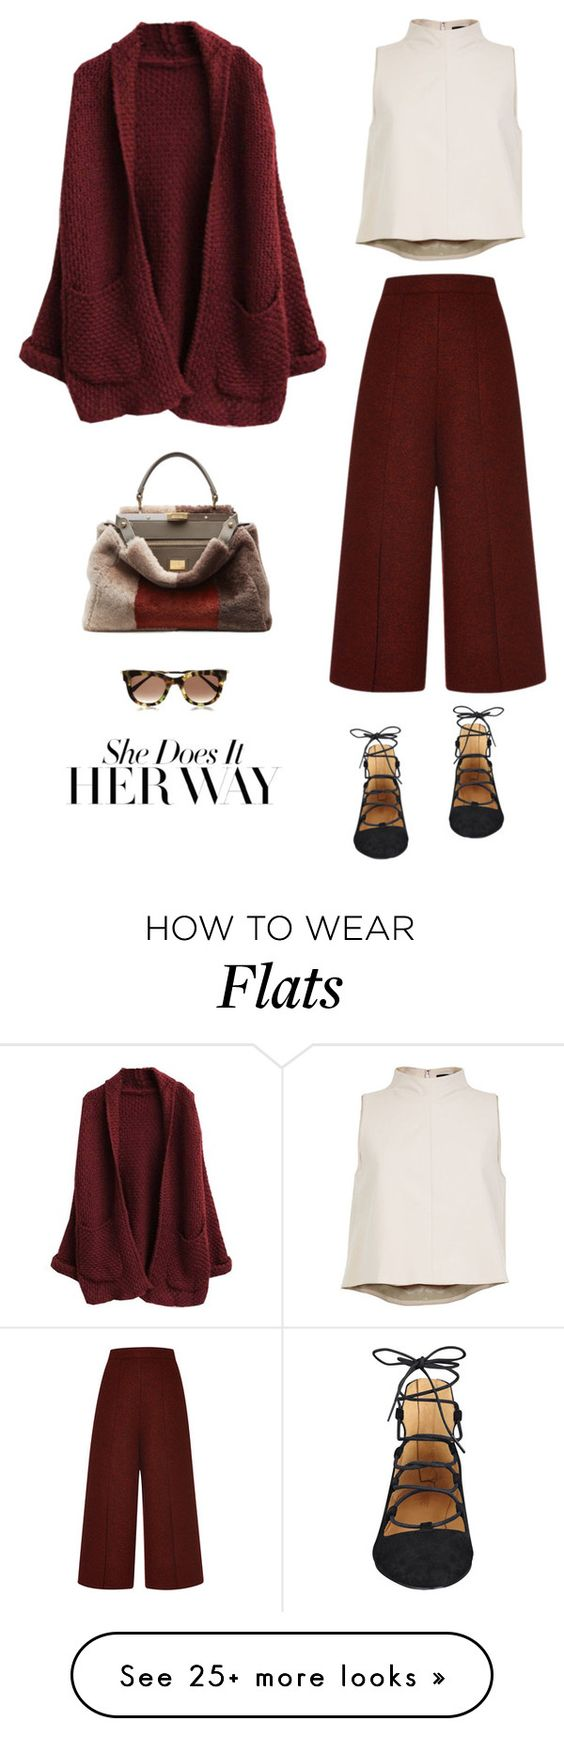 """Burgundy"" by youaresofashion on Polyvore featuring Proenza Schouler, TIBI, Nine West and Fendi"